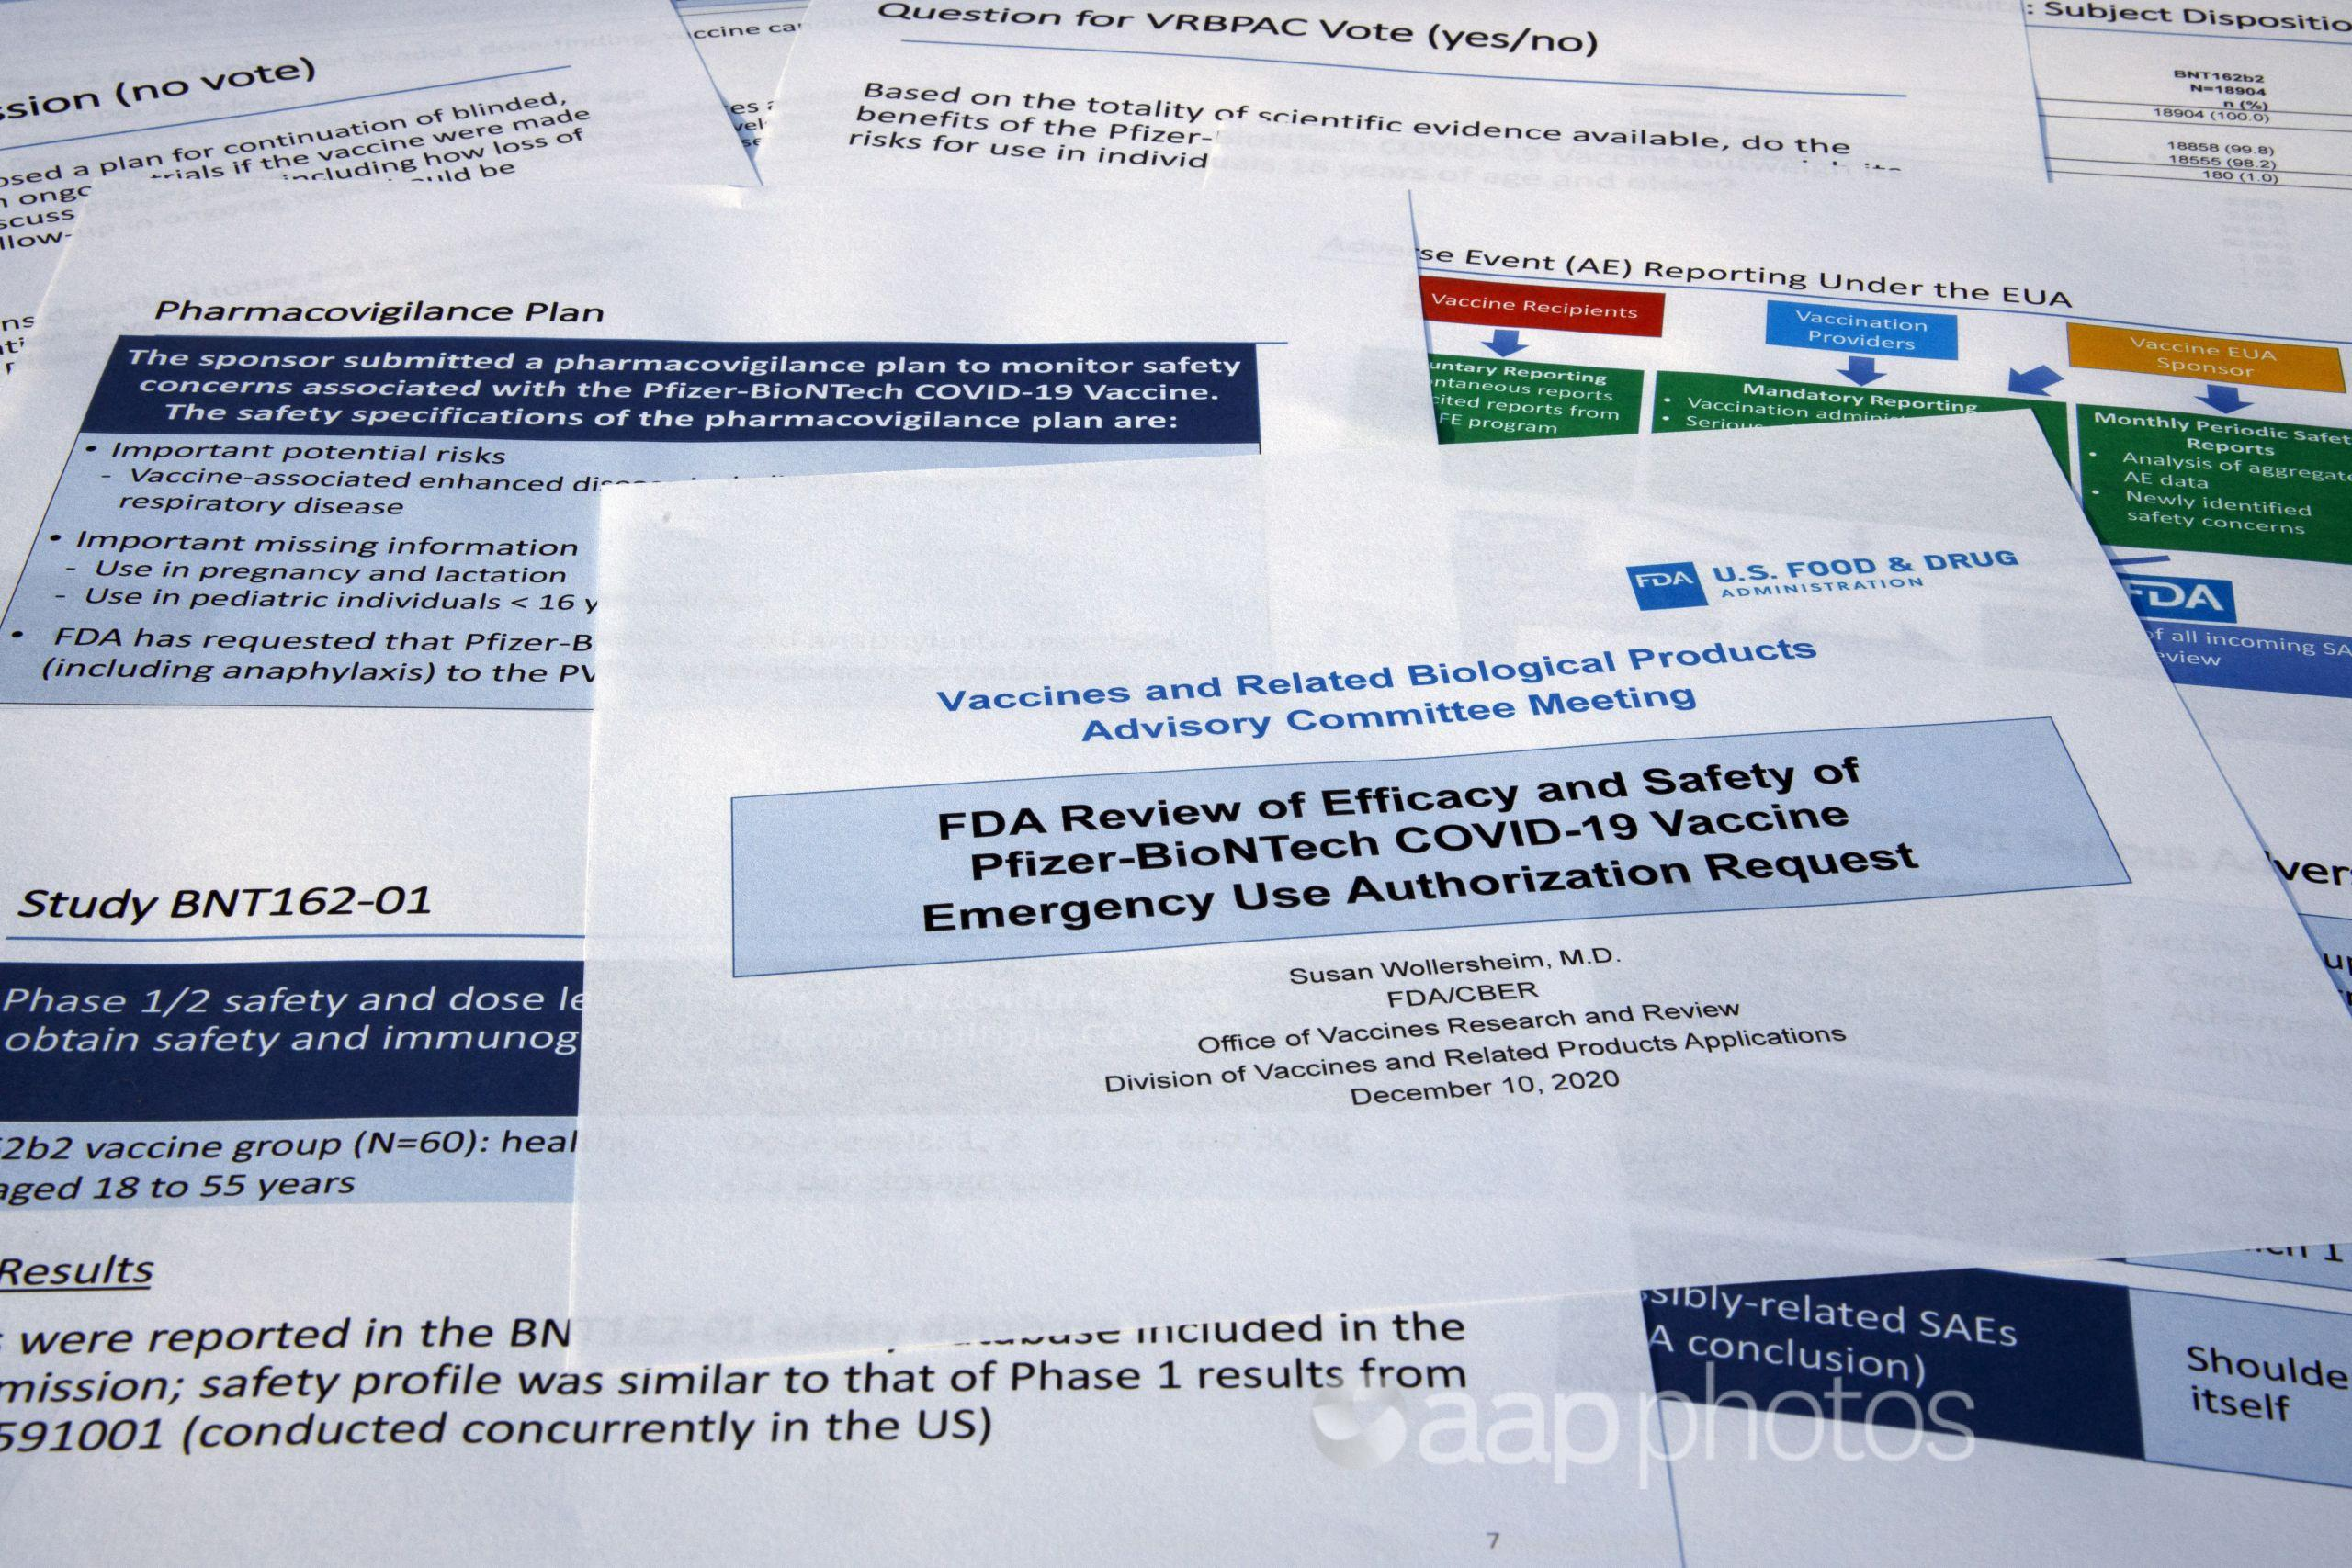 Documents created by the Food and Drug Administration